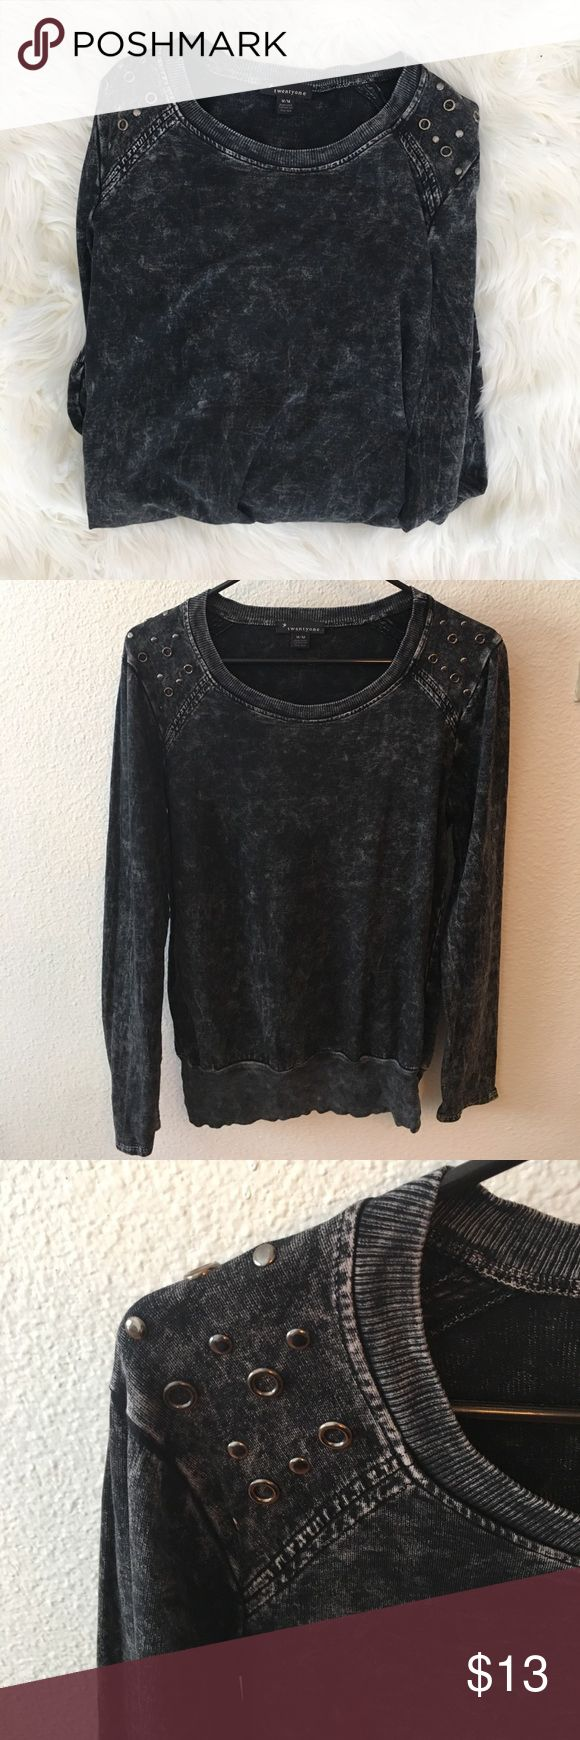 Black studded sweater Black acid wash sweater with metal stud details on the shoulders, worn twice. Sweaters Crew & Scoop Necks